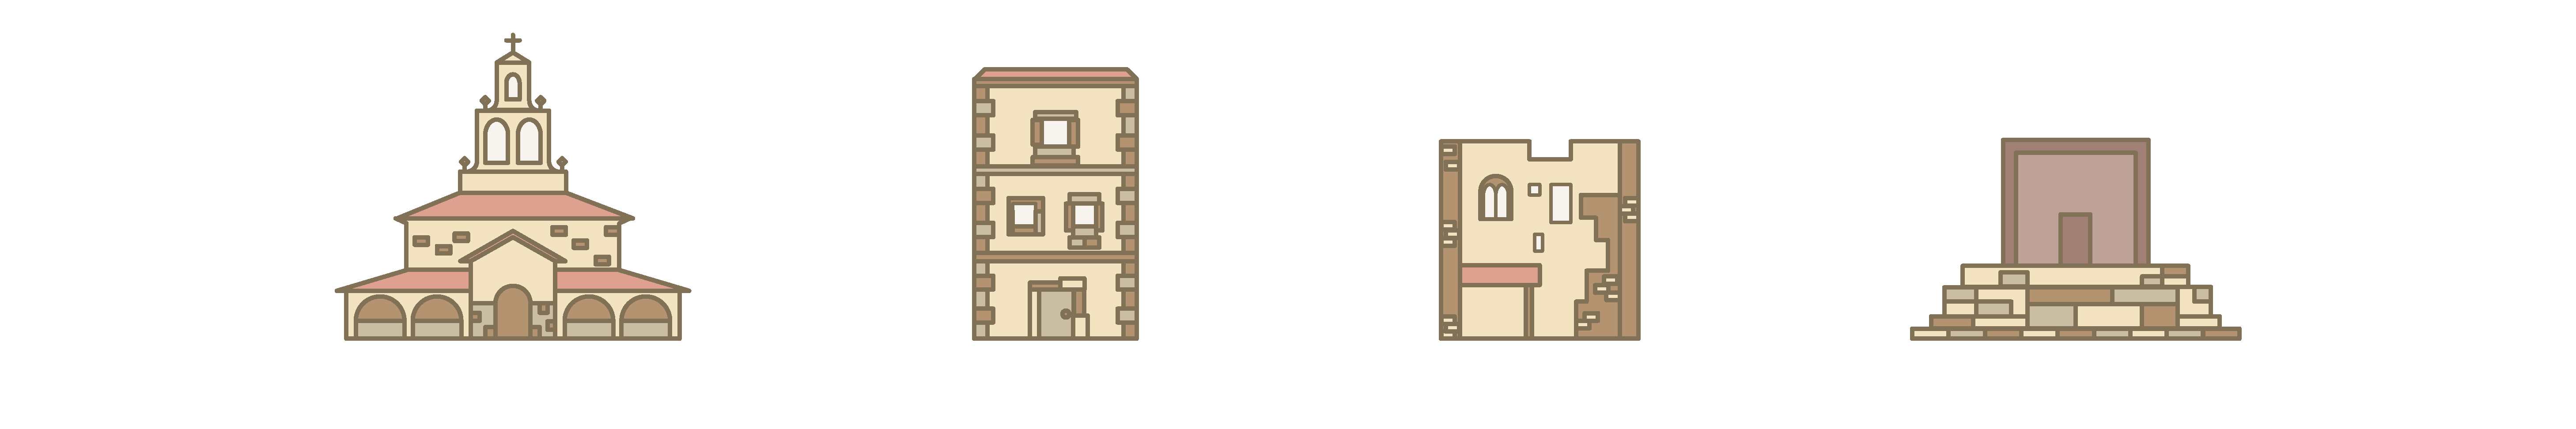 Customized monument icons to show at first glance how are the main elements of the roman ruins